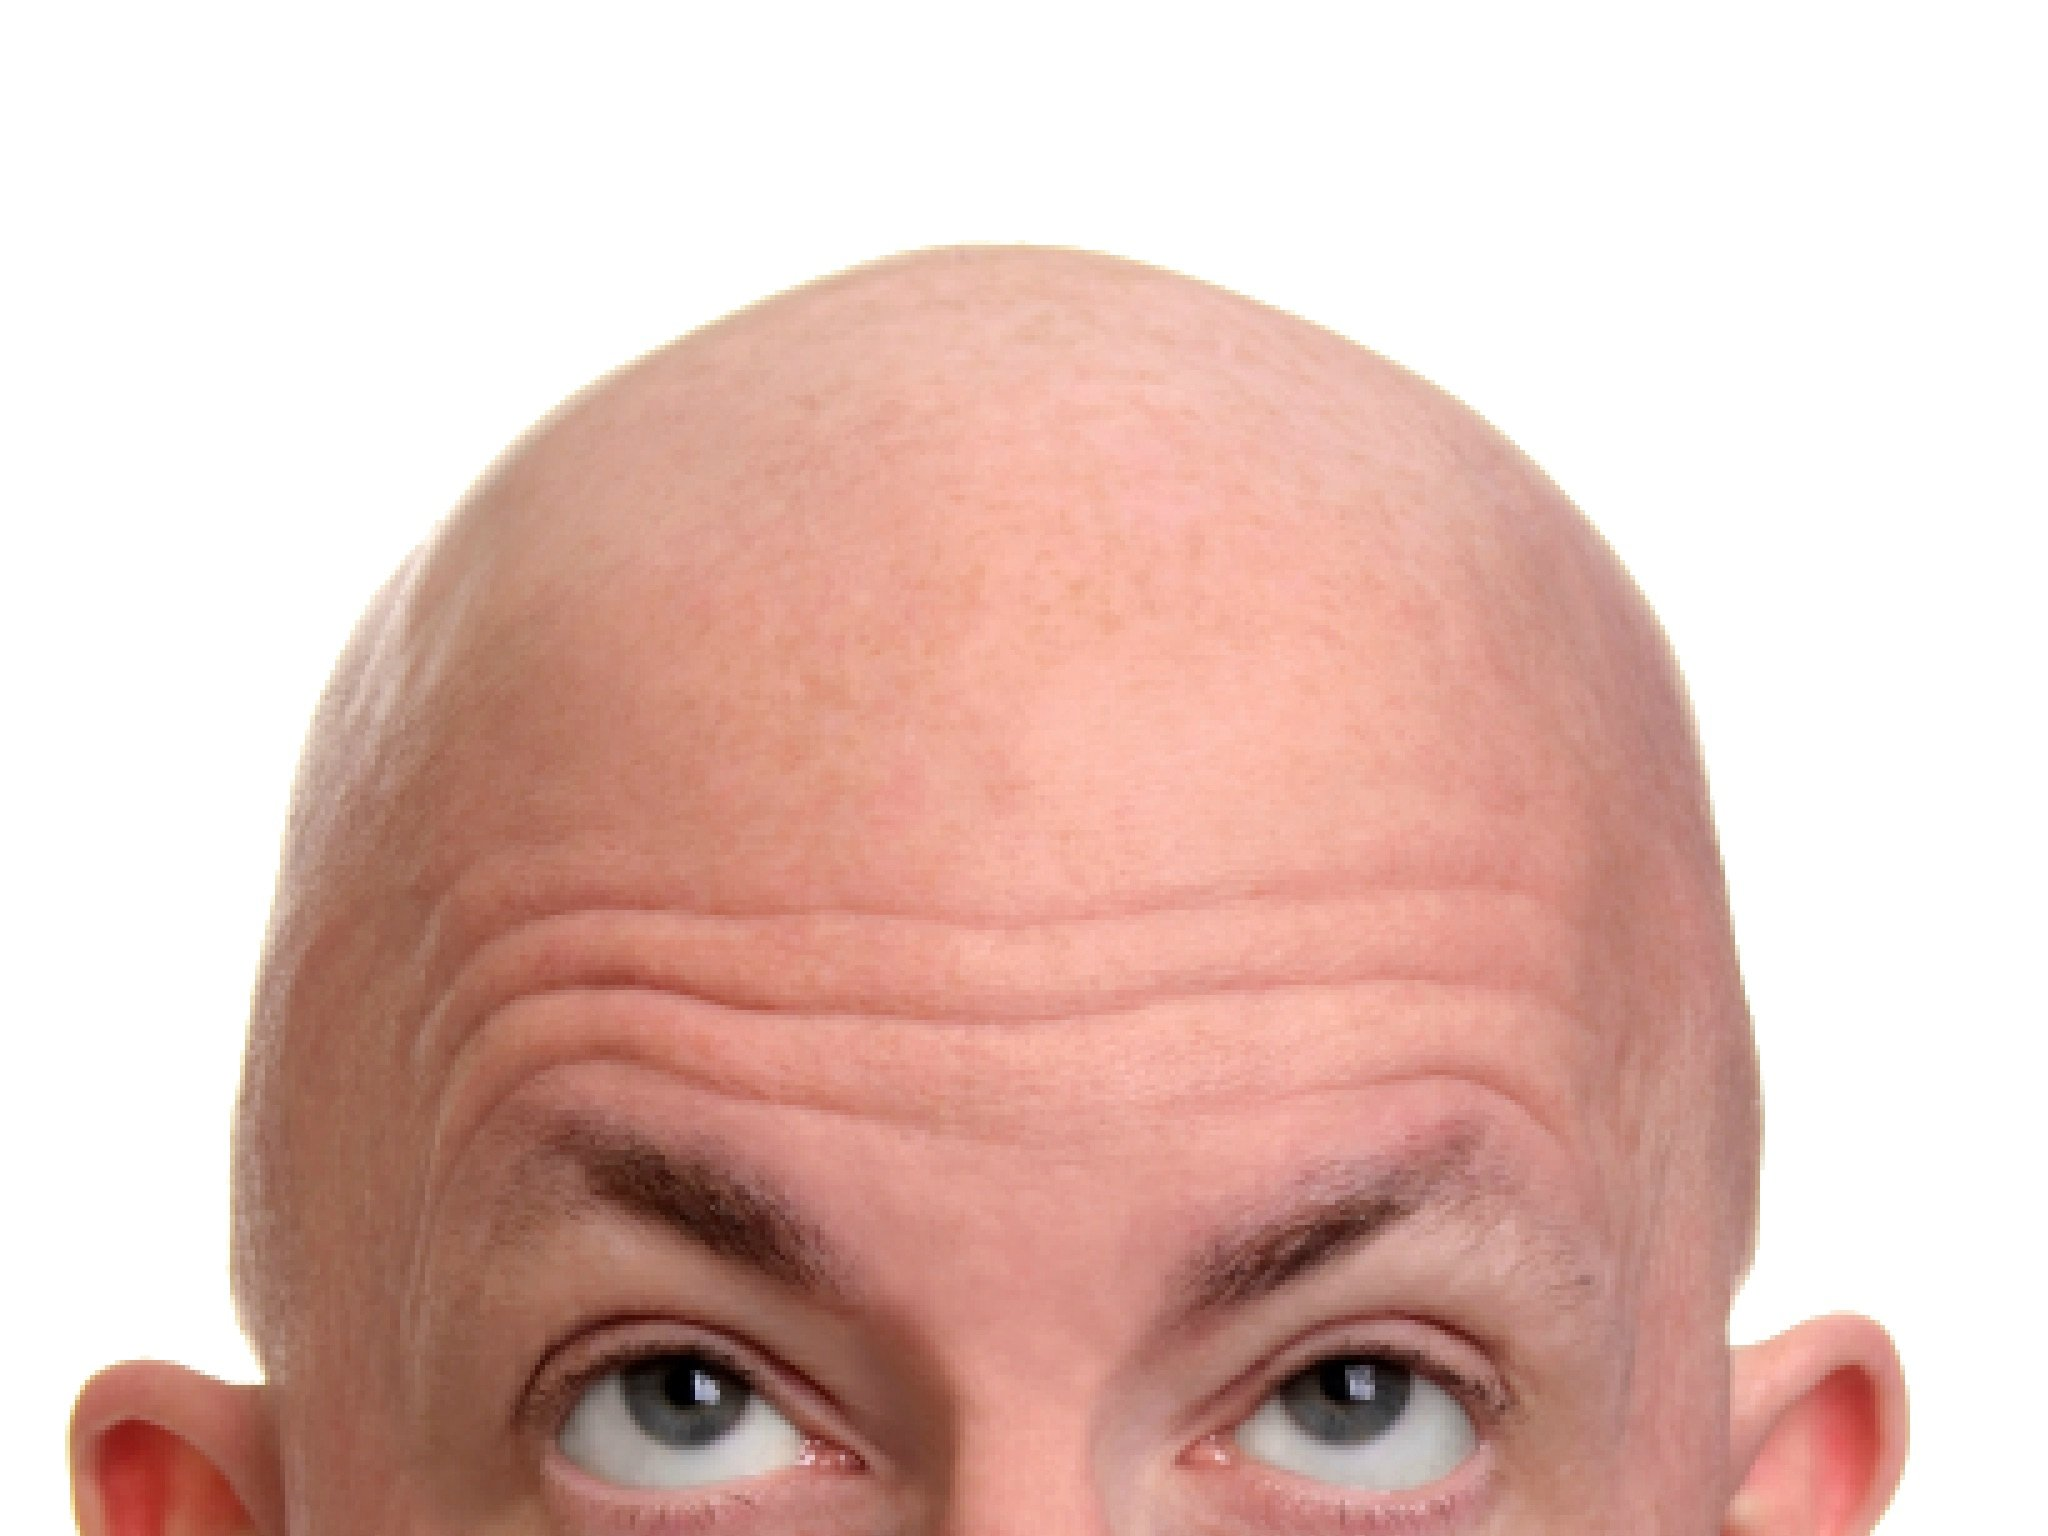 Insecure bald man